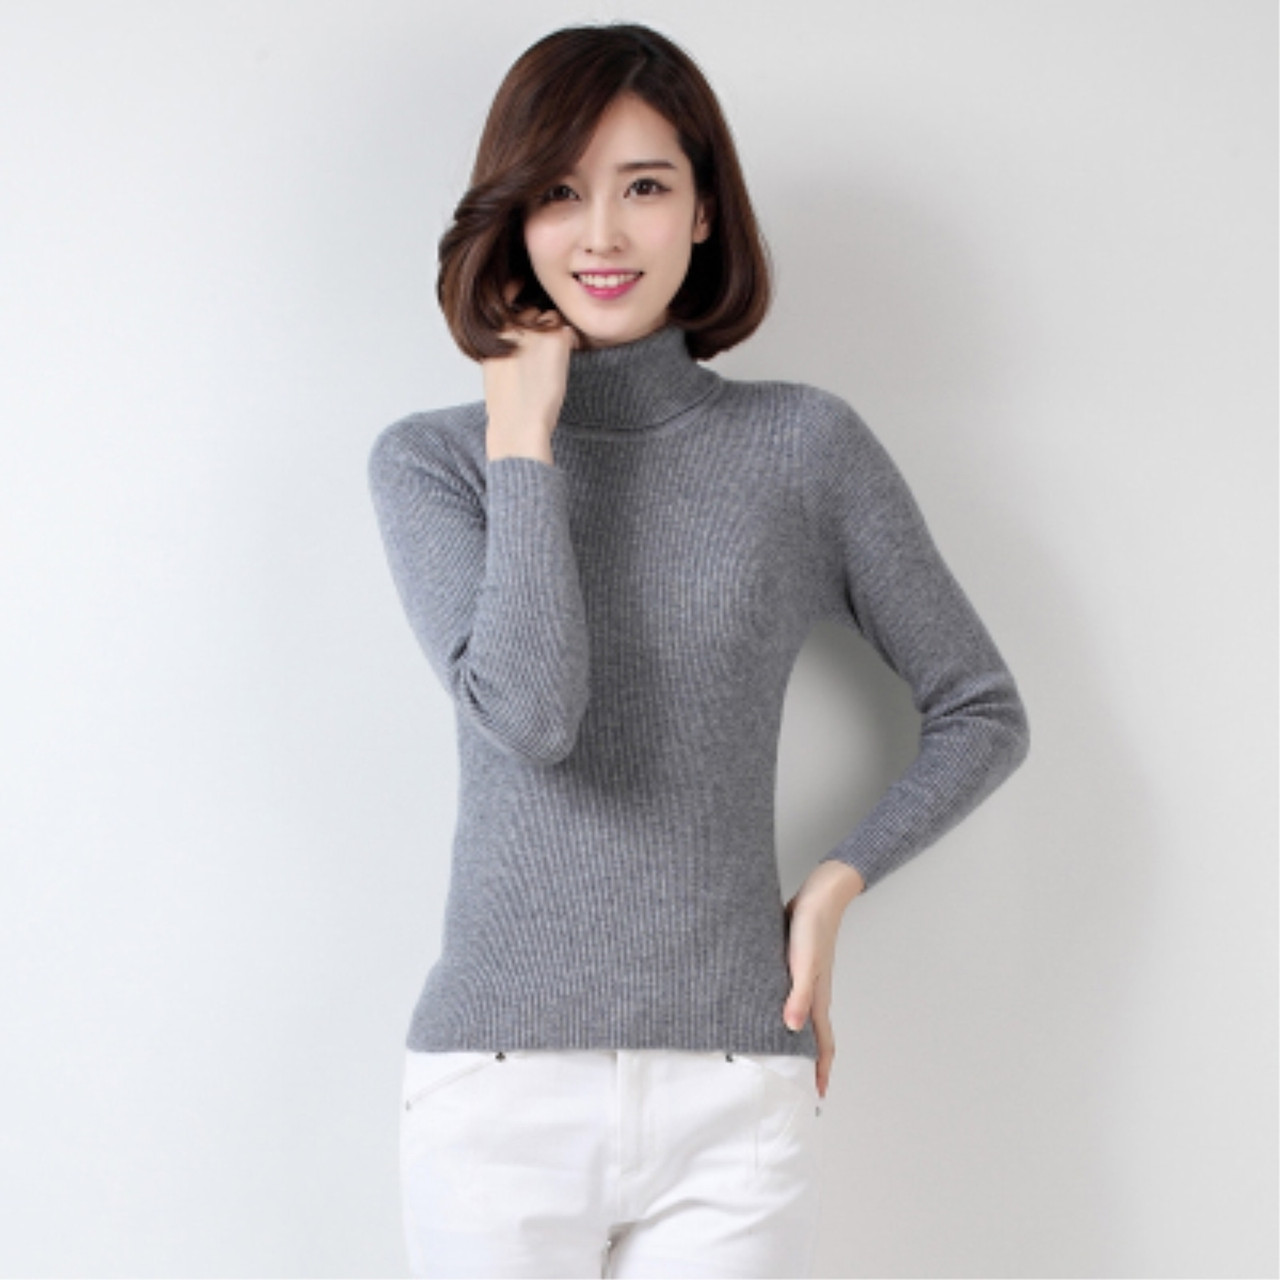 High Collar Sweater Women Half-Sleeved Cashmere Slim Short Knitted Pullover